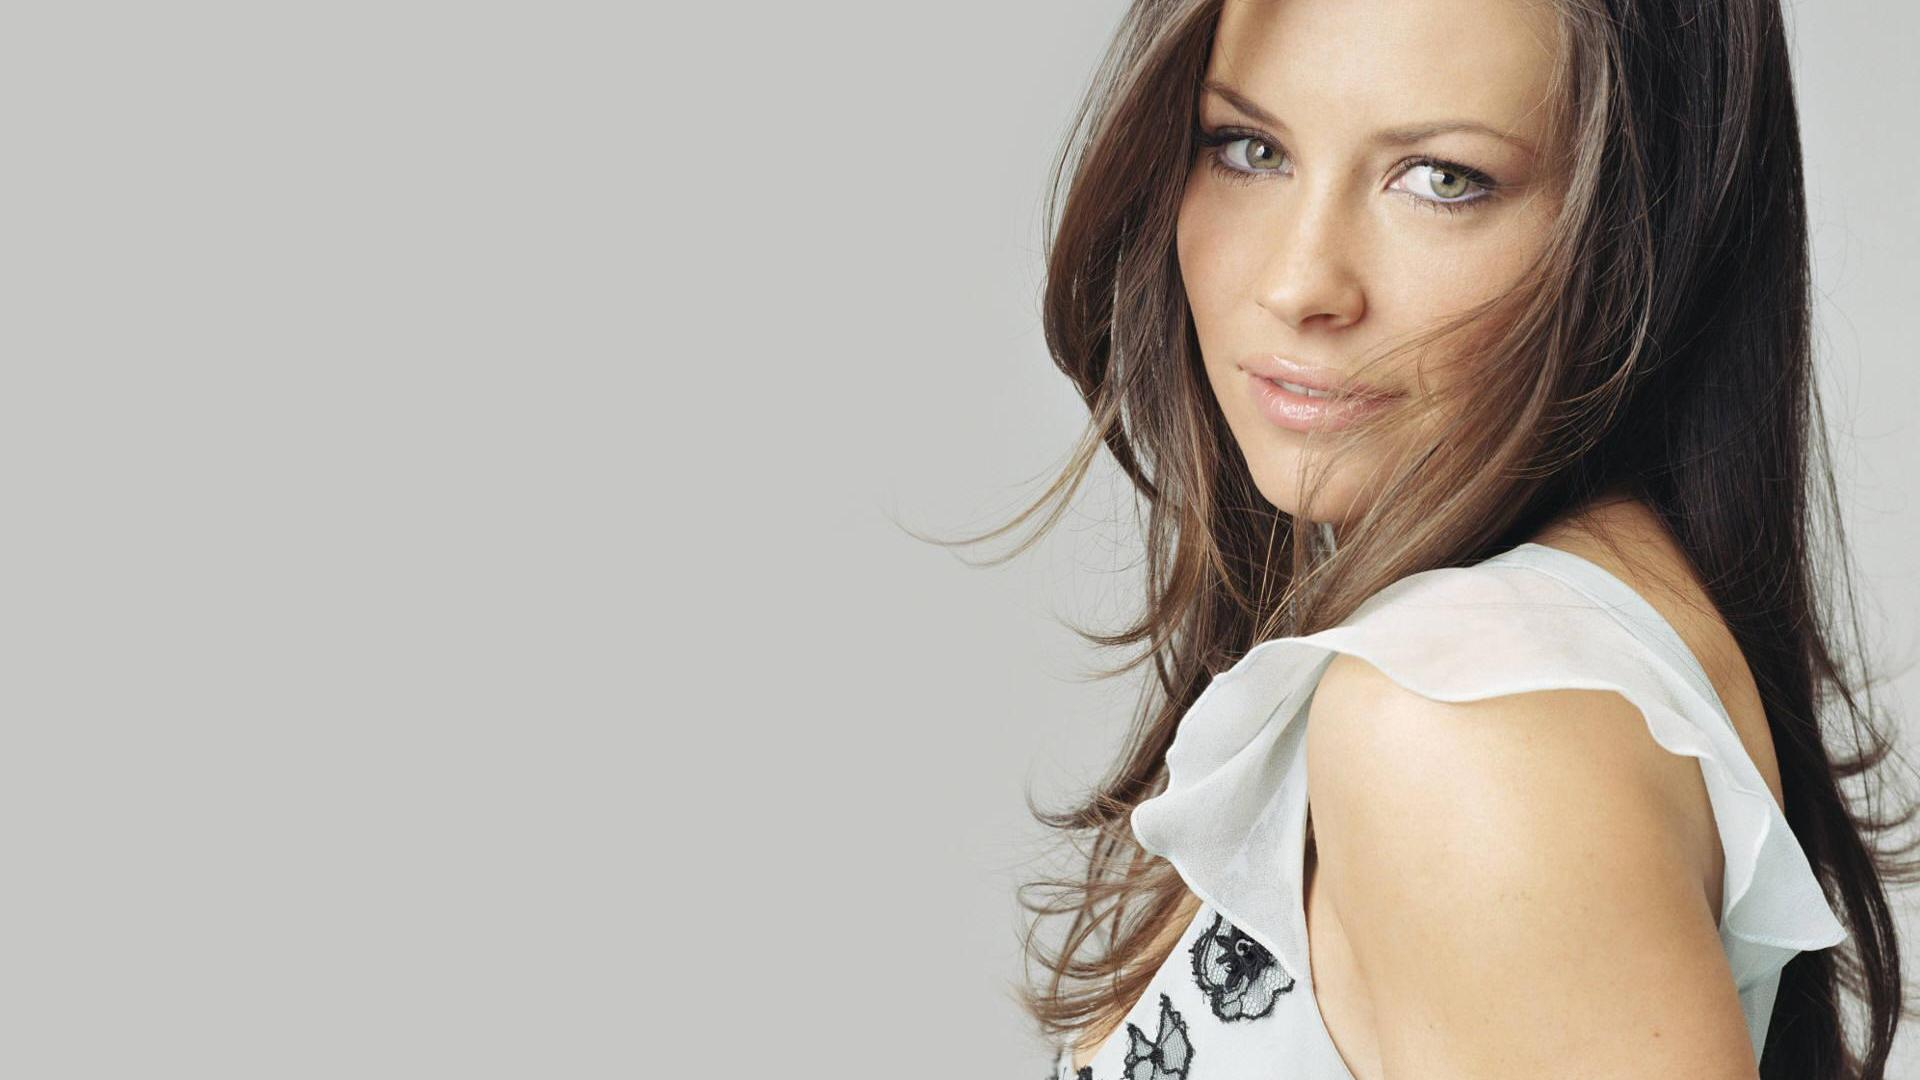 Evangeline Lilly Wallpaper 1920x1080 43403 browse share and rate a 1920x1080